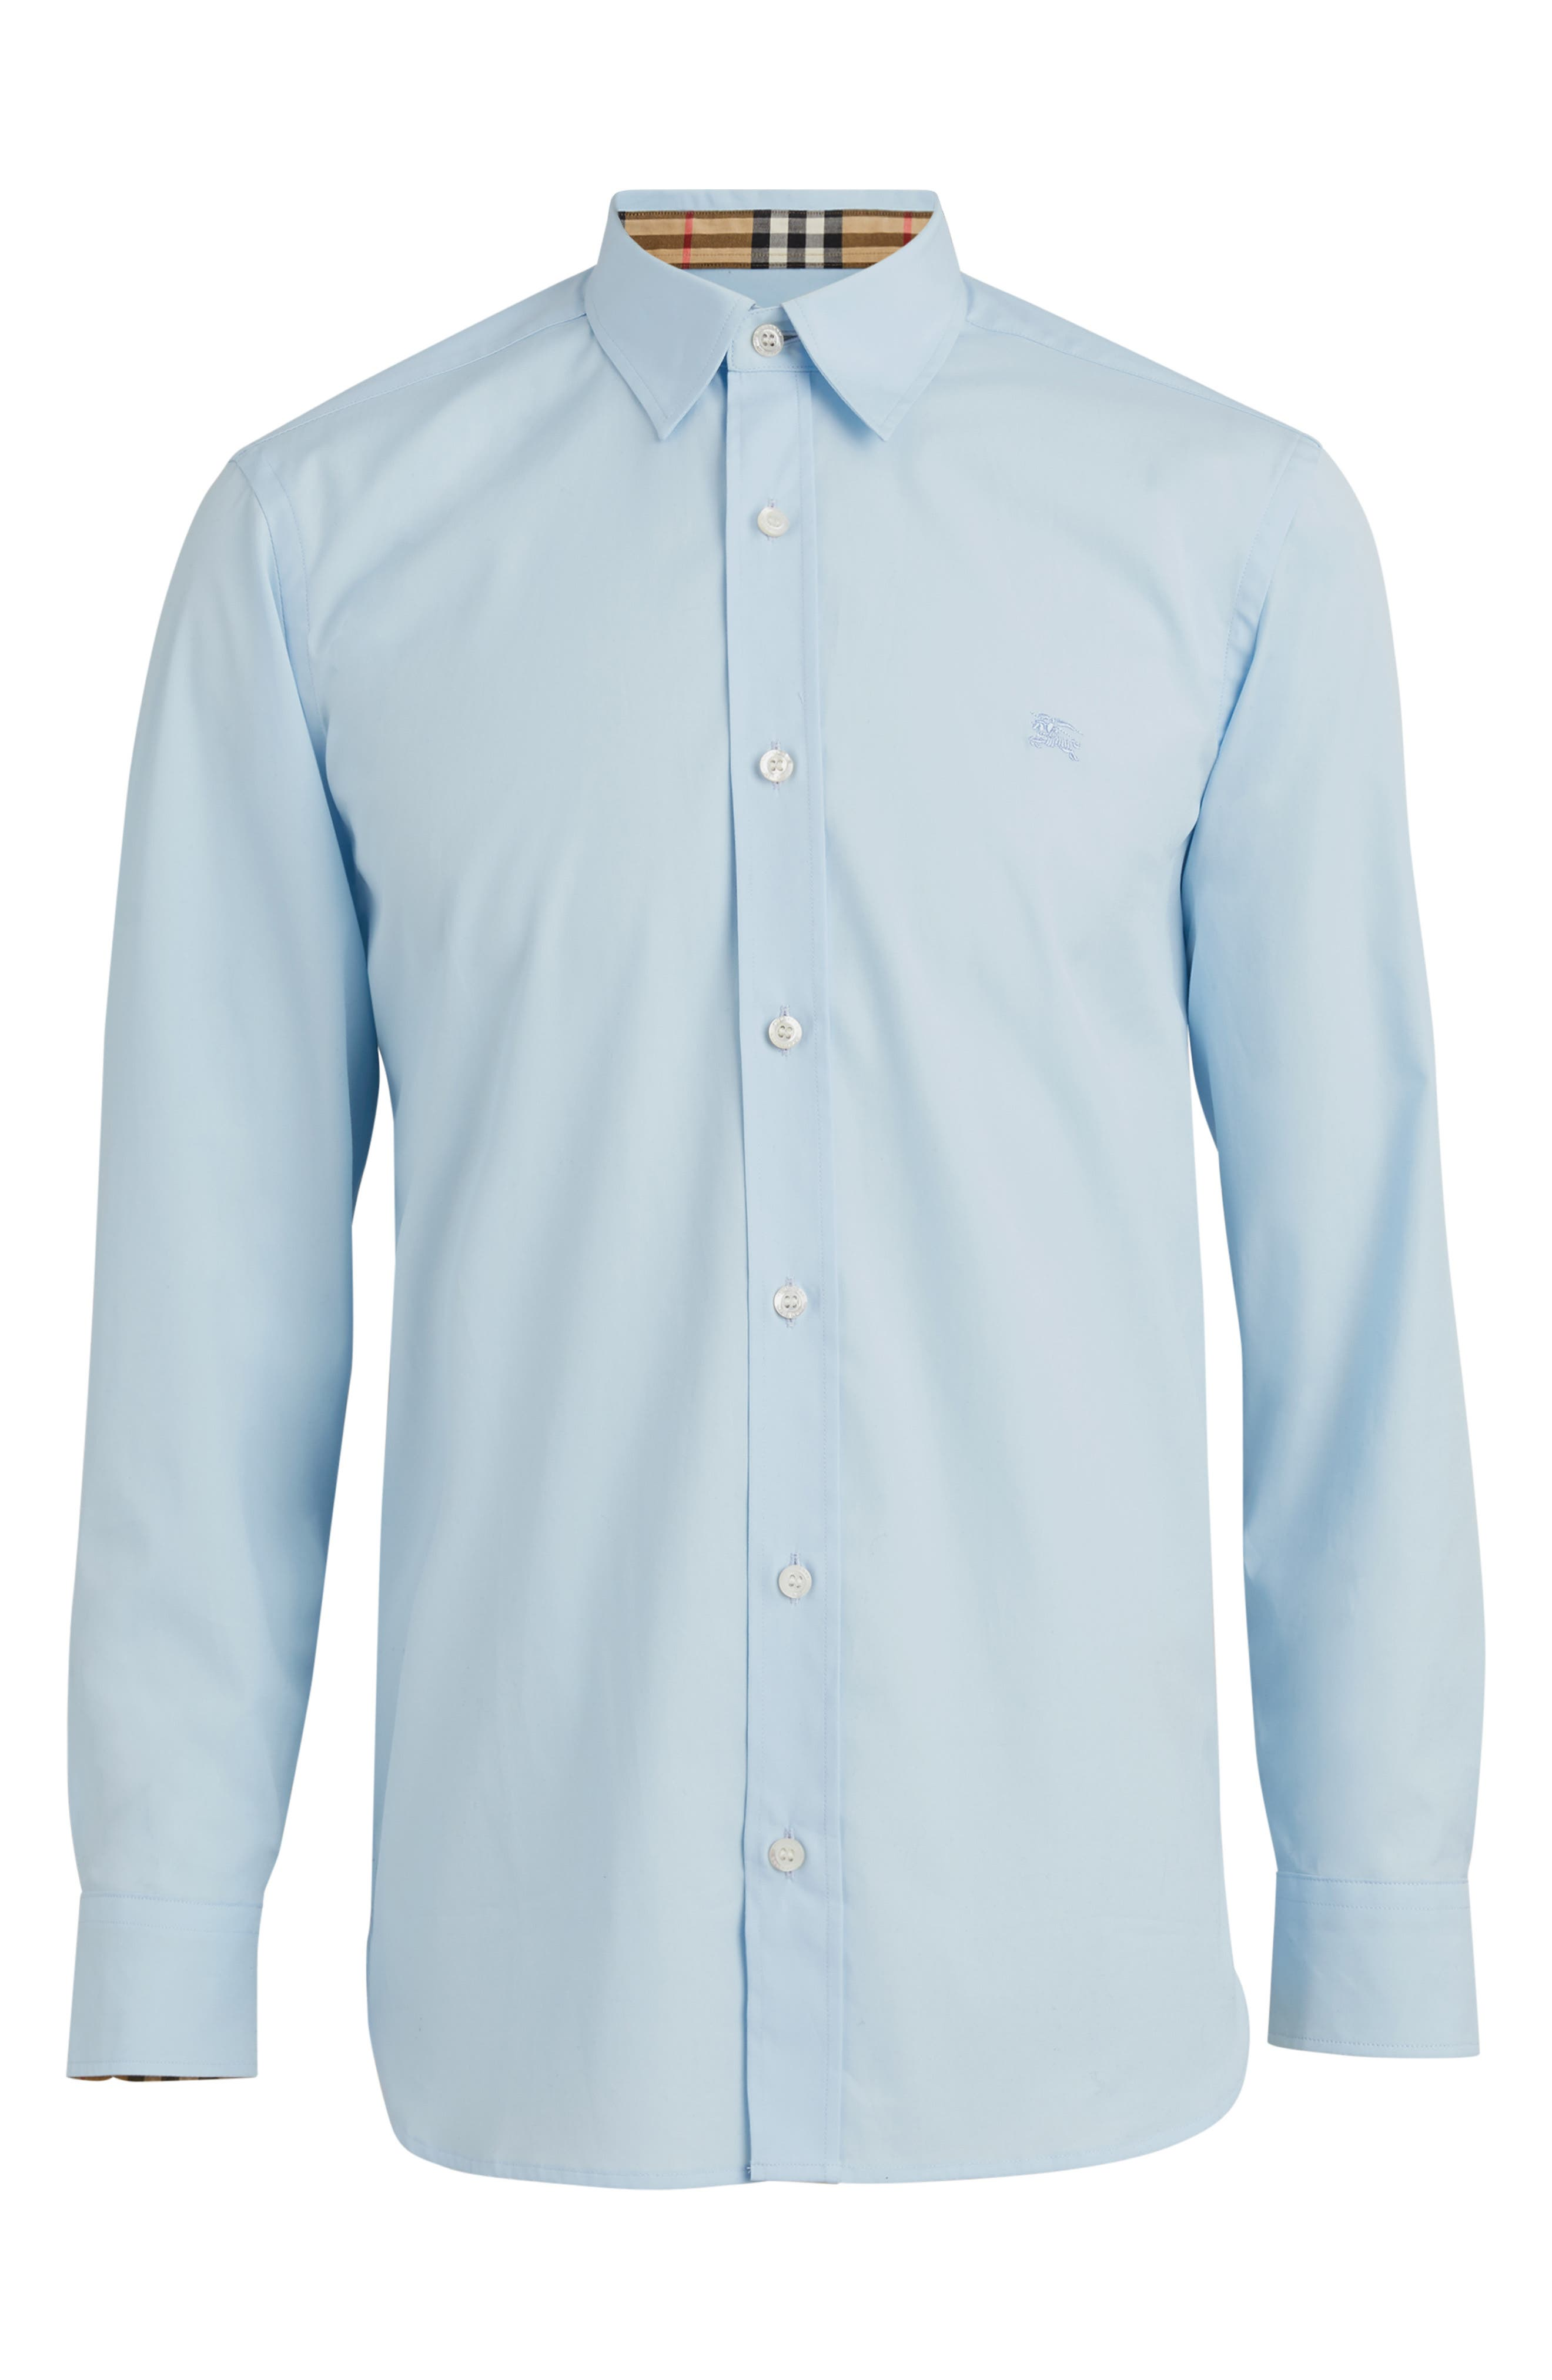 BURBERRY,                             William Stretch Poplin Sport Shirt,                             Alternate thumbnail 4, color,                             PALE BLUE